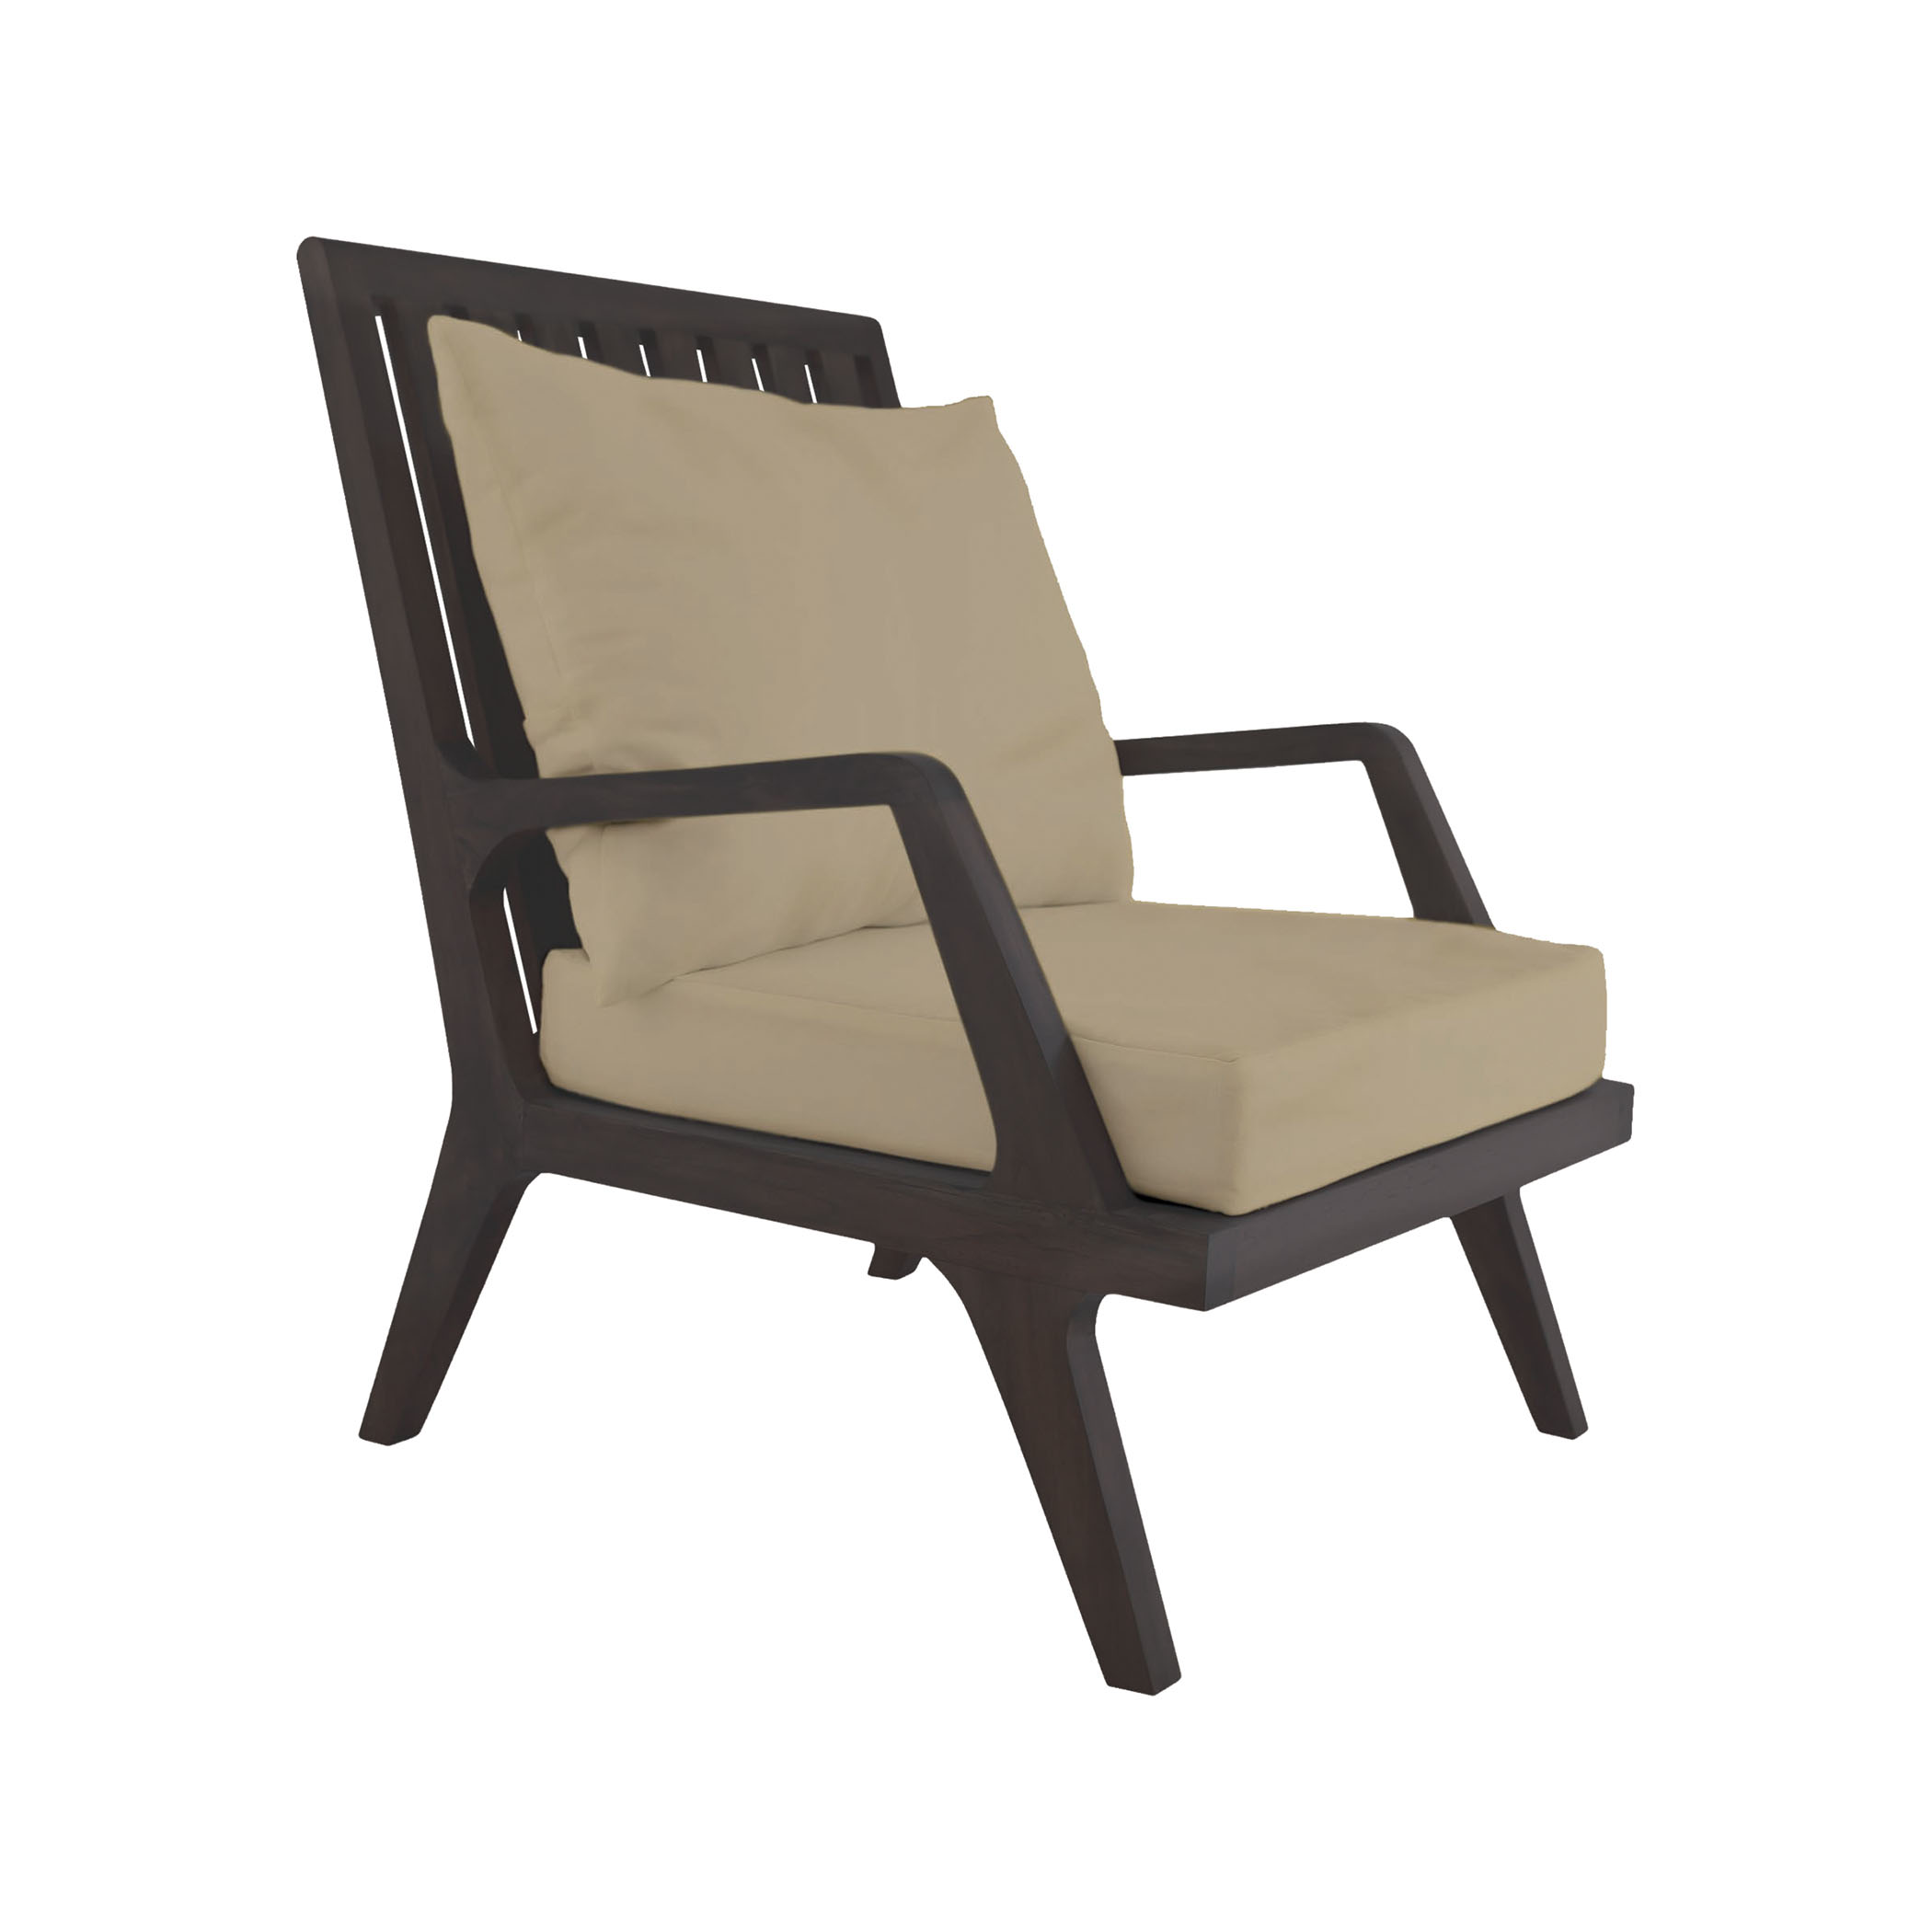 Teak Patio Lounge Chair Cushions in Cream (2-Piece Set) | Elk Home